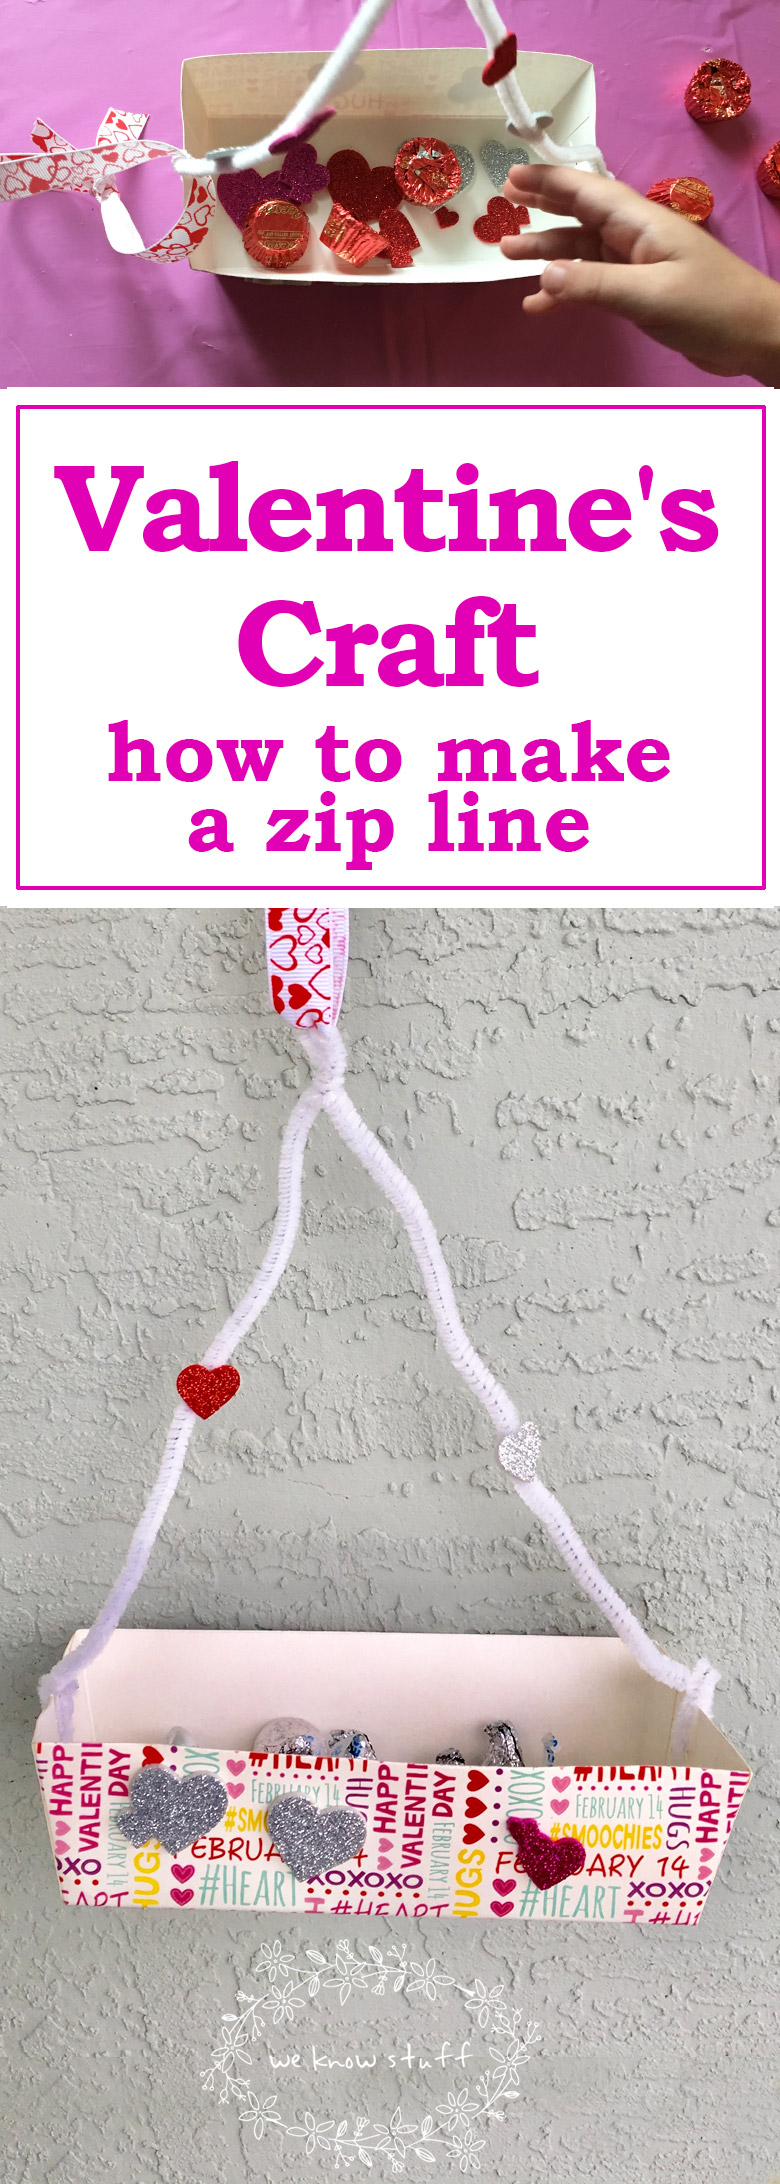 Have you ever wondered how to make a zip line for toys (or, you know, candy)? Well, this super cute Valentine's Day Craft is a fun way to focus on STEM principals at home and can be easily adapted for older kids too.